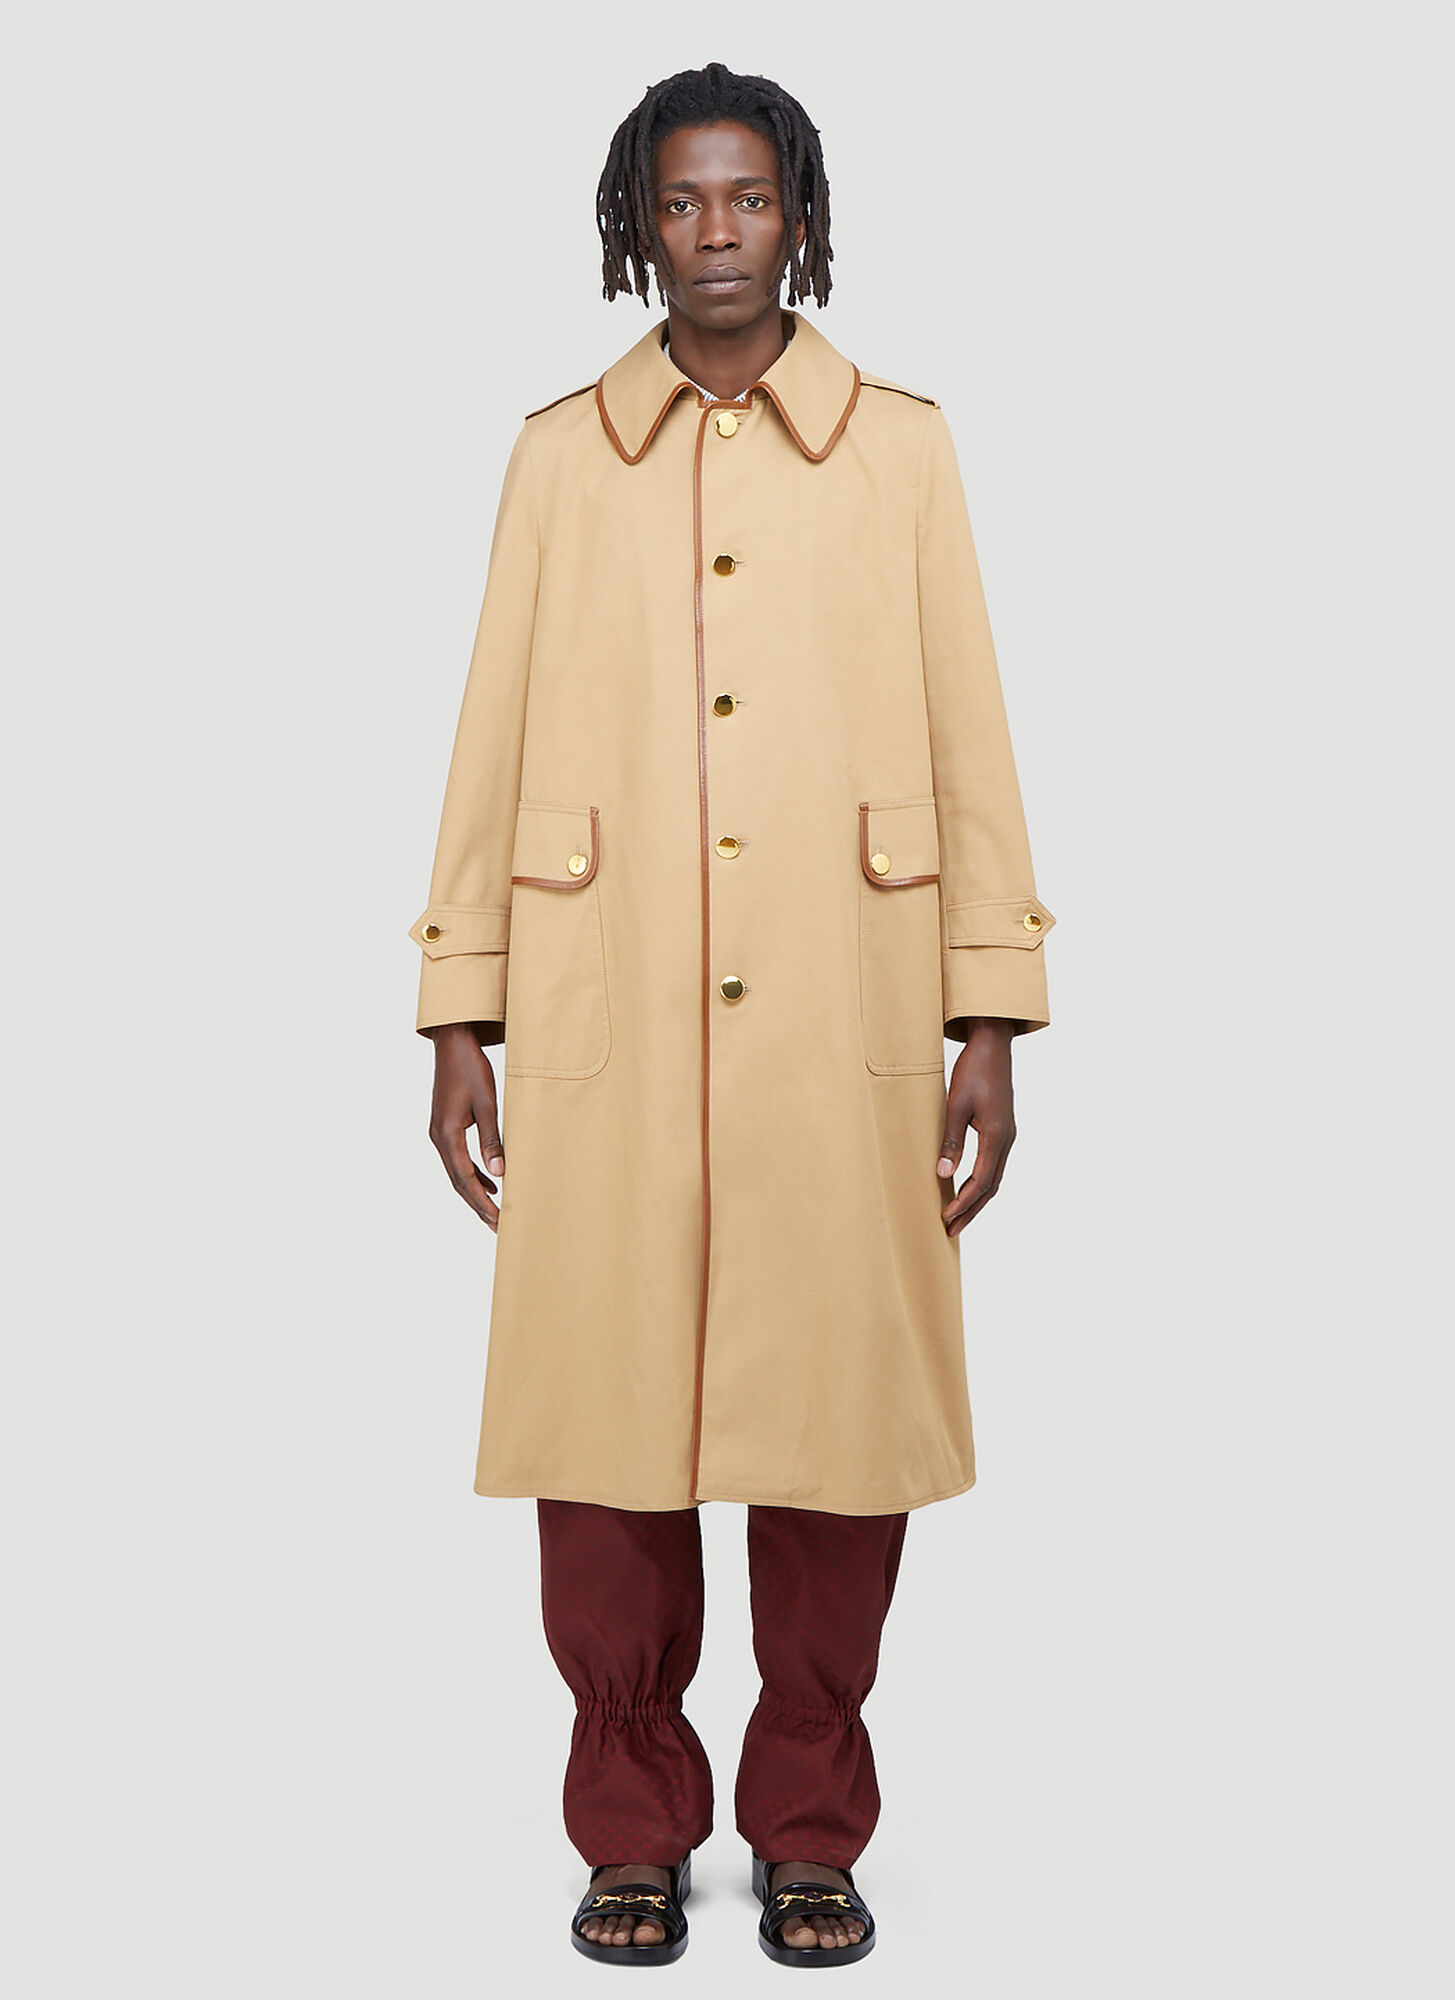 Gucci Oversized Trench Coat